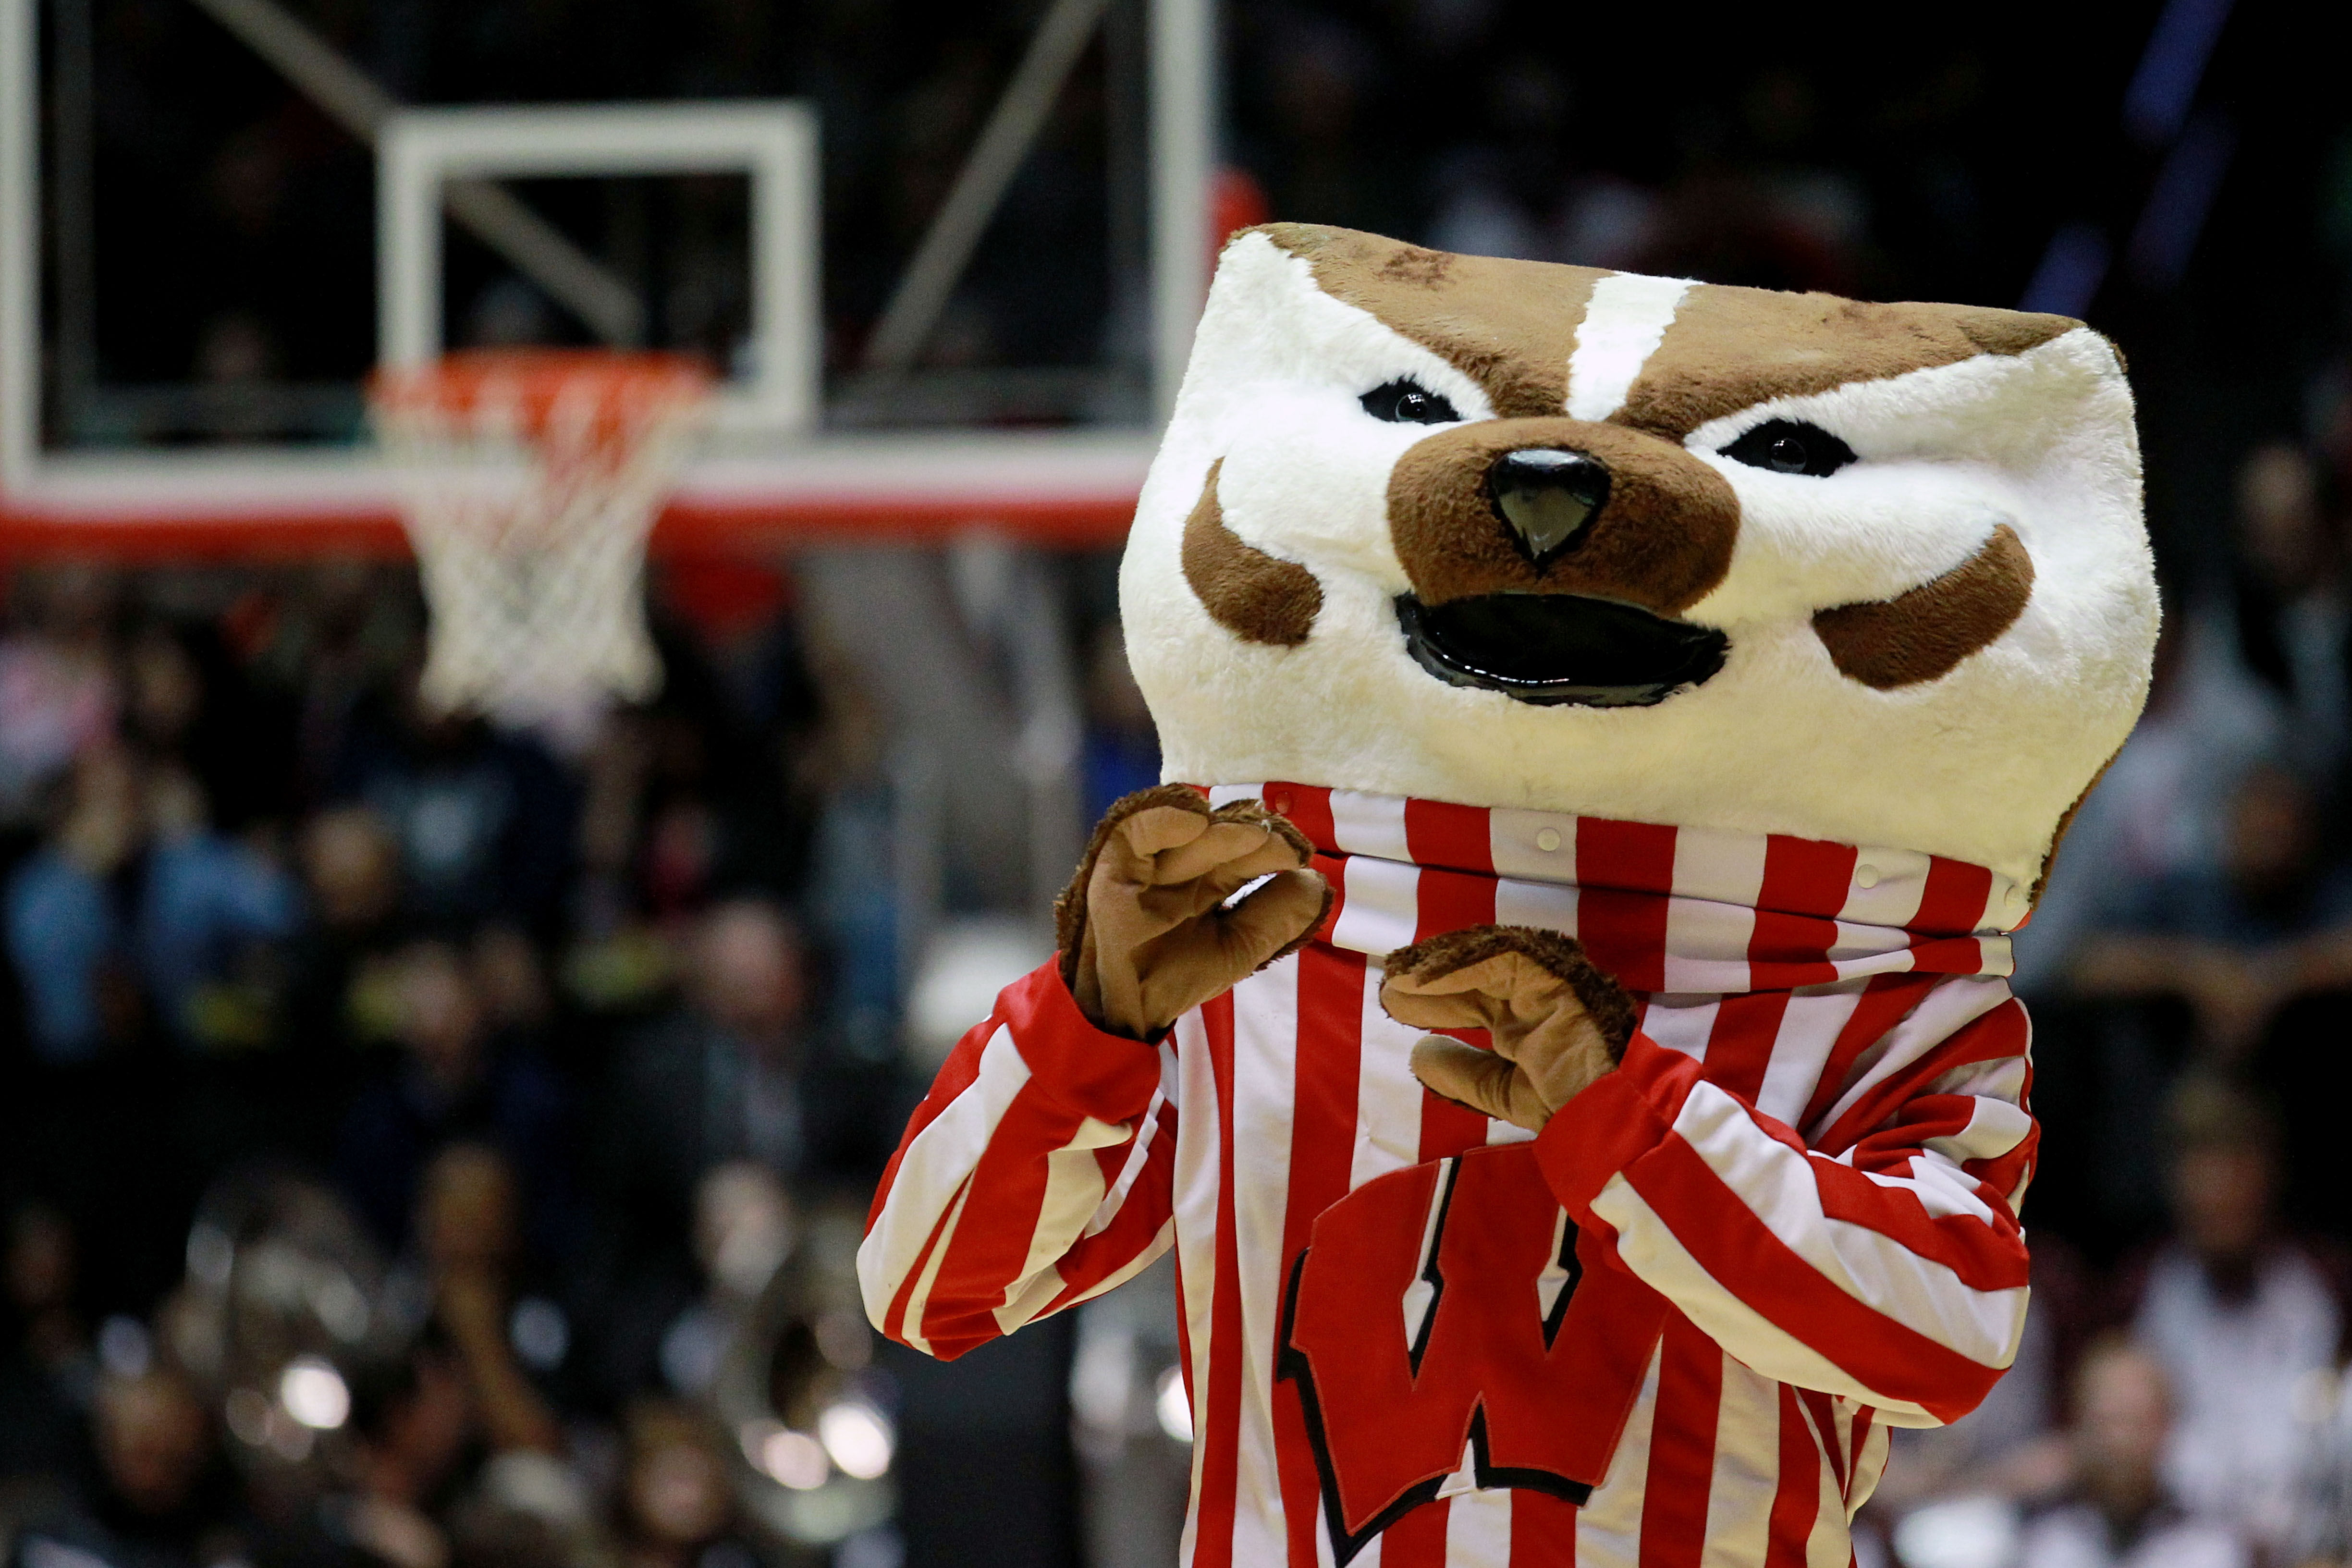 Badgers men's basketball: Wisconsin falls to Marquette 82-63 amid injury woes